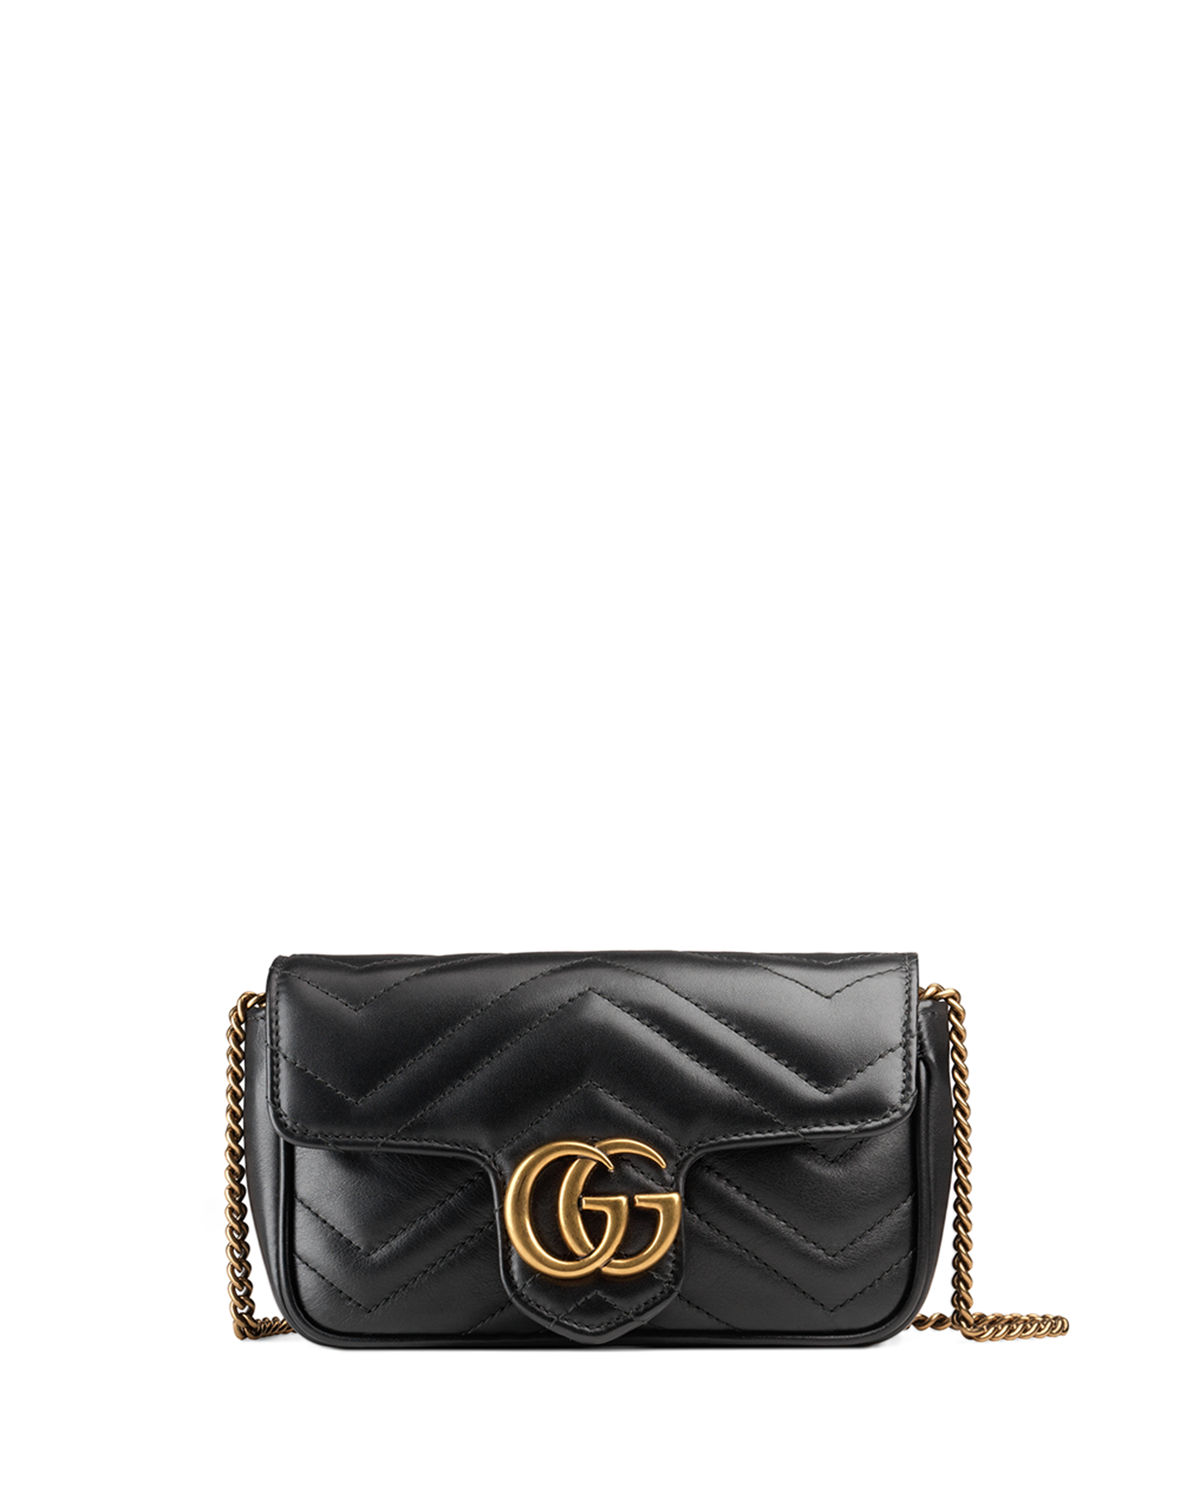 07e8df851578 Gucci GG Marmont Matelasse Leather Super Mini Bag | Neiman Marcus